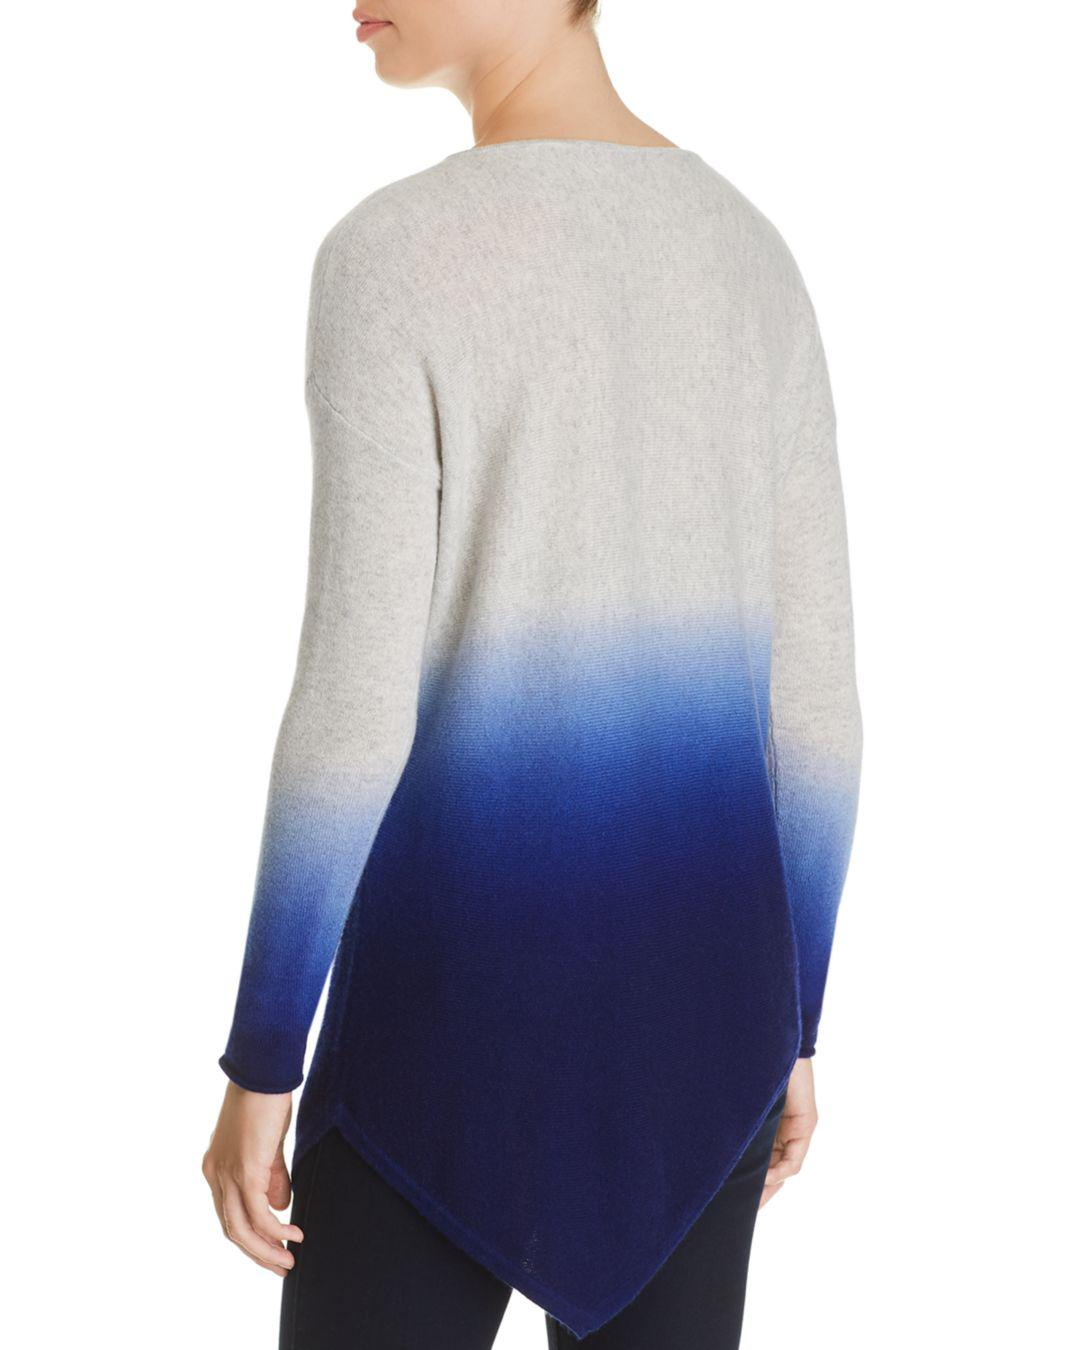 Lyst - C By Bloomingdale s Asymmetric Dip-dye Cashmere Sweater in Blue 43218a0c7